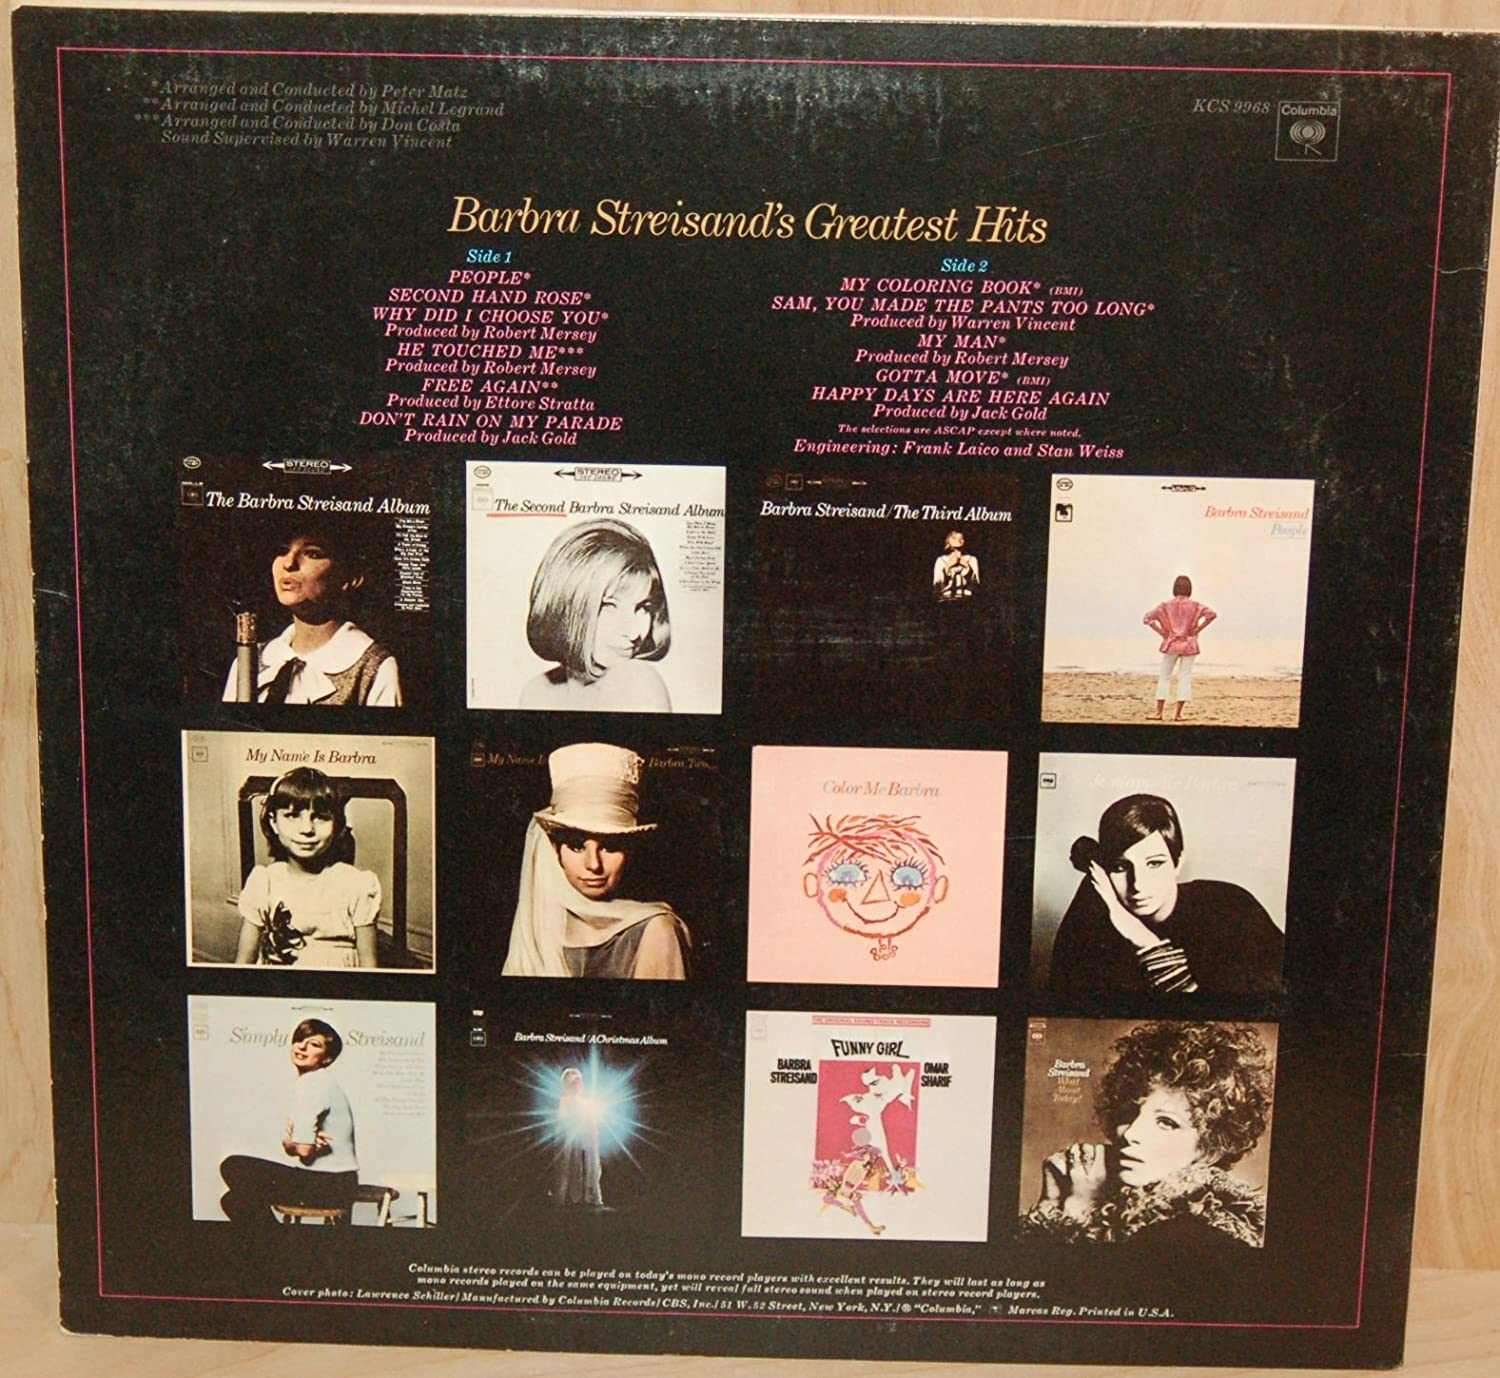 The coloring book barbra streisand - The Coloring Book Barbra Streisand 7